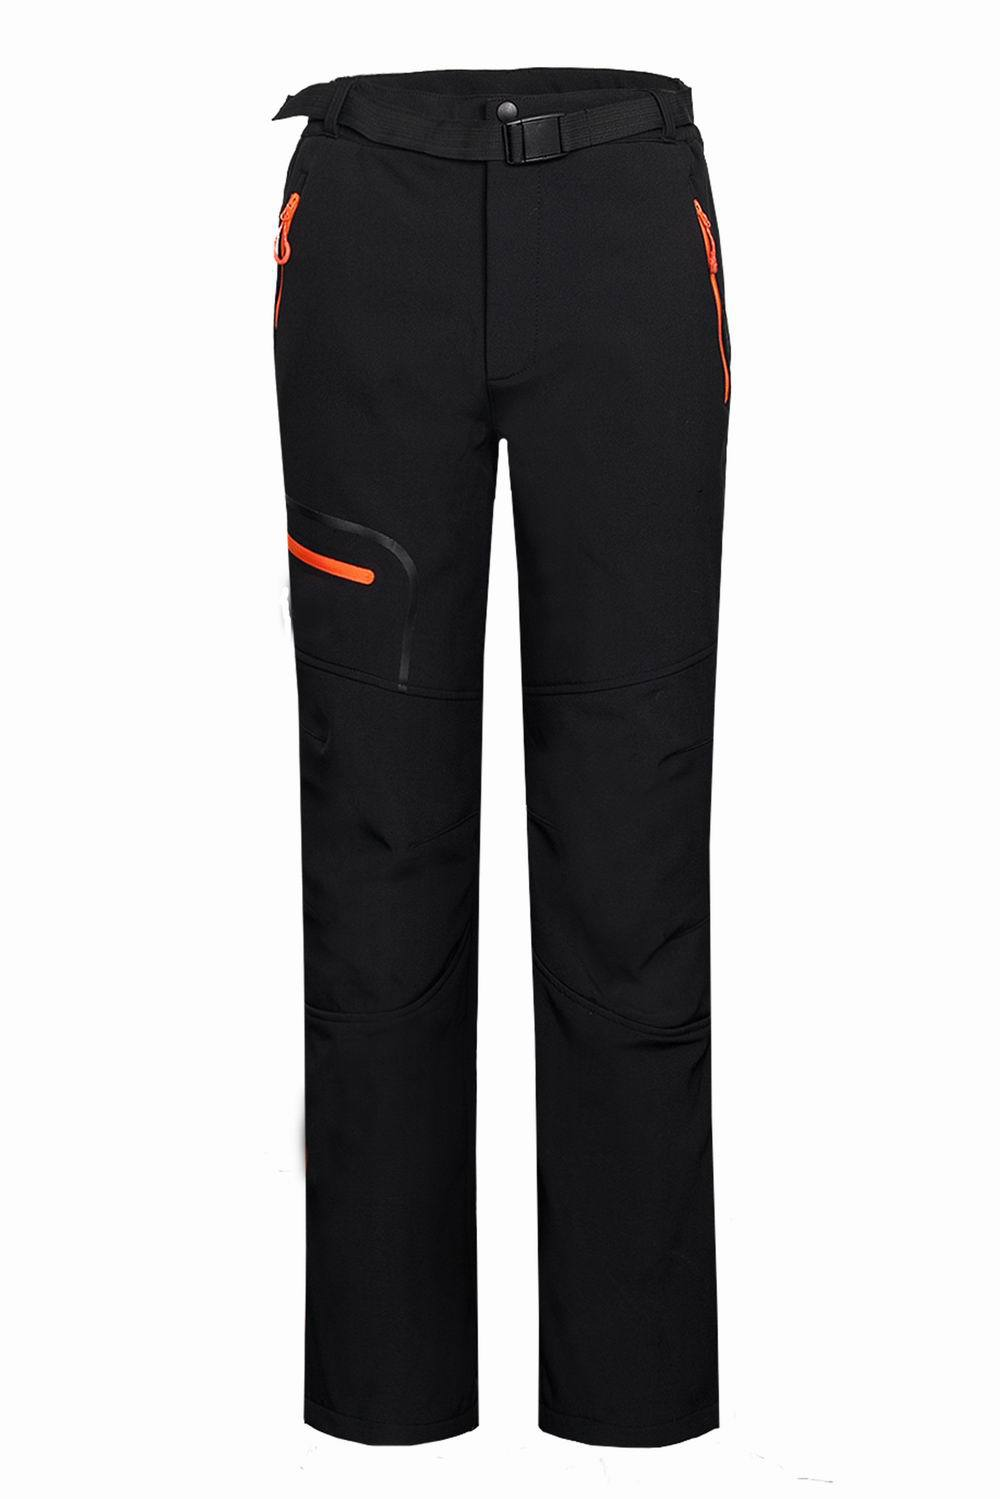 warm winter Men softshell pants waterproof Outdoor camping & hiking pants Fleece windproof skiing snowboard trousers